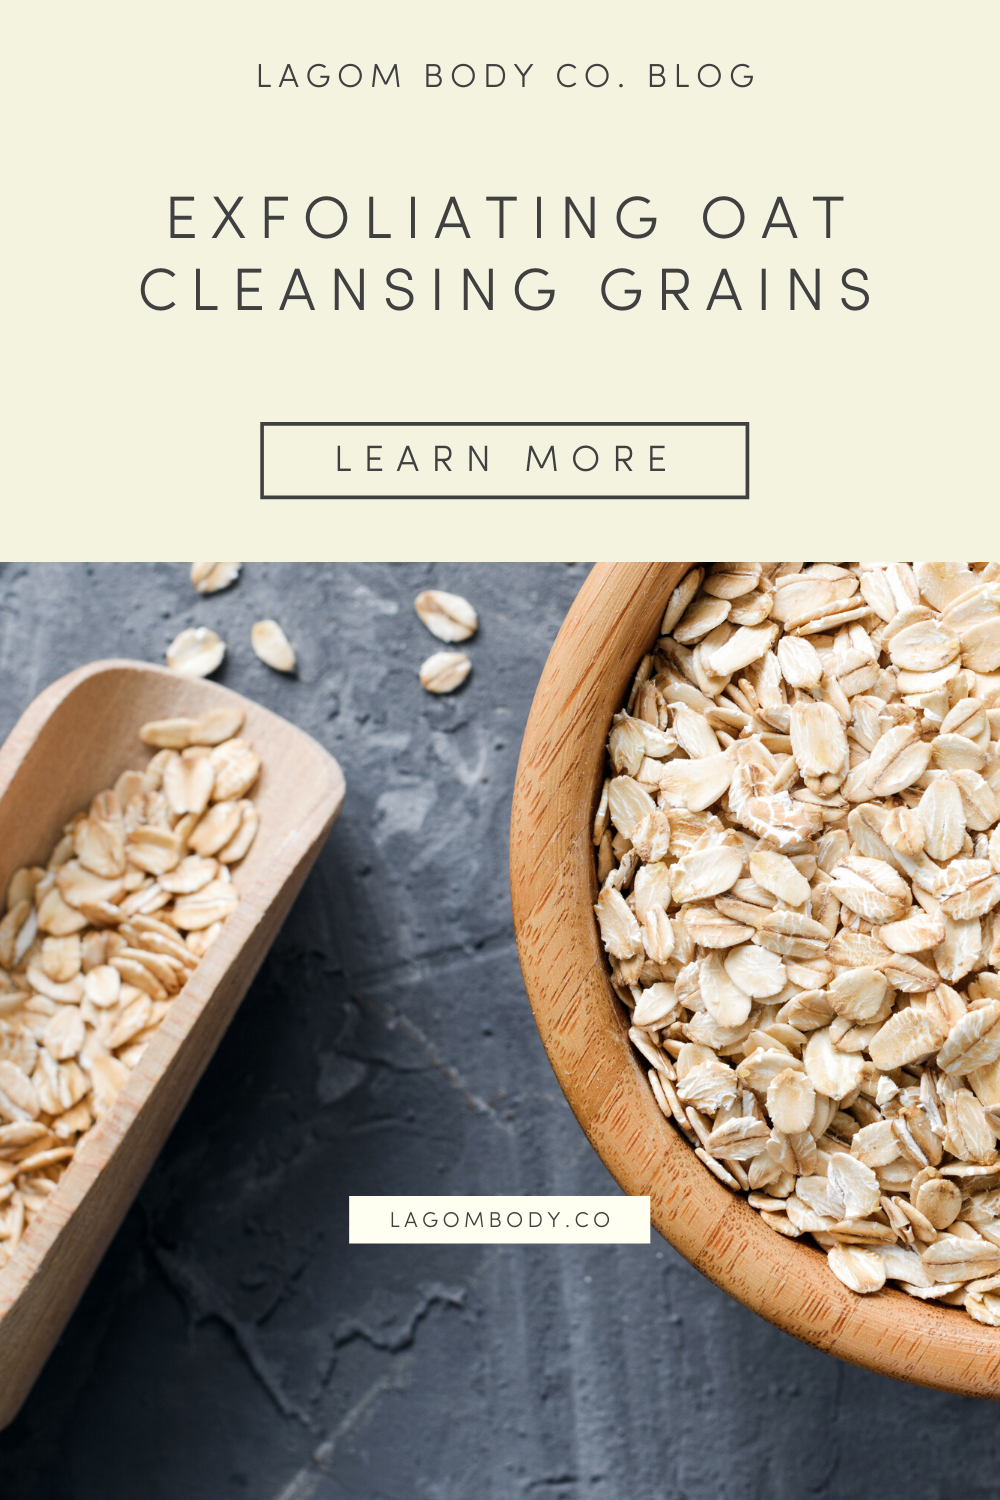 Exfoliating Oat Cleansing Grains Recipe - Quarantine Self-Care Pinterest Promo